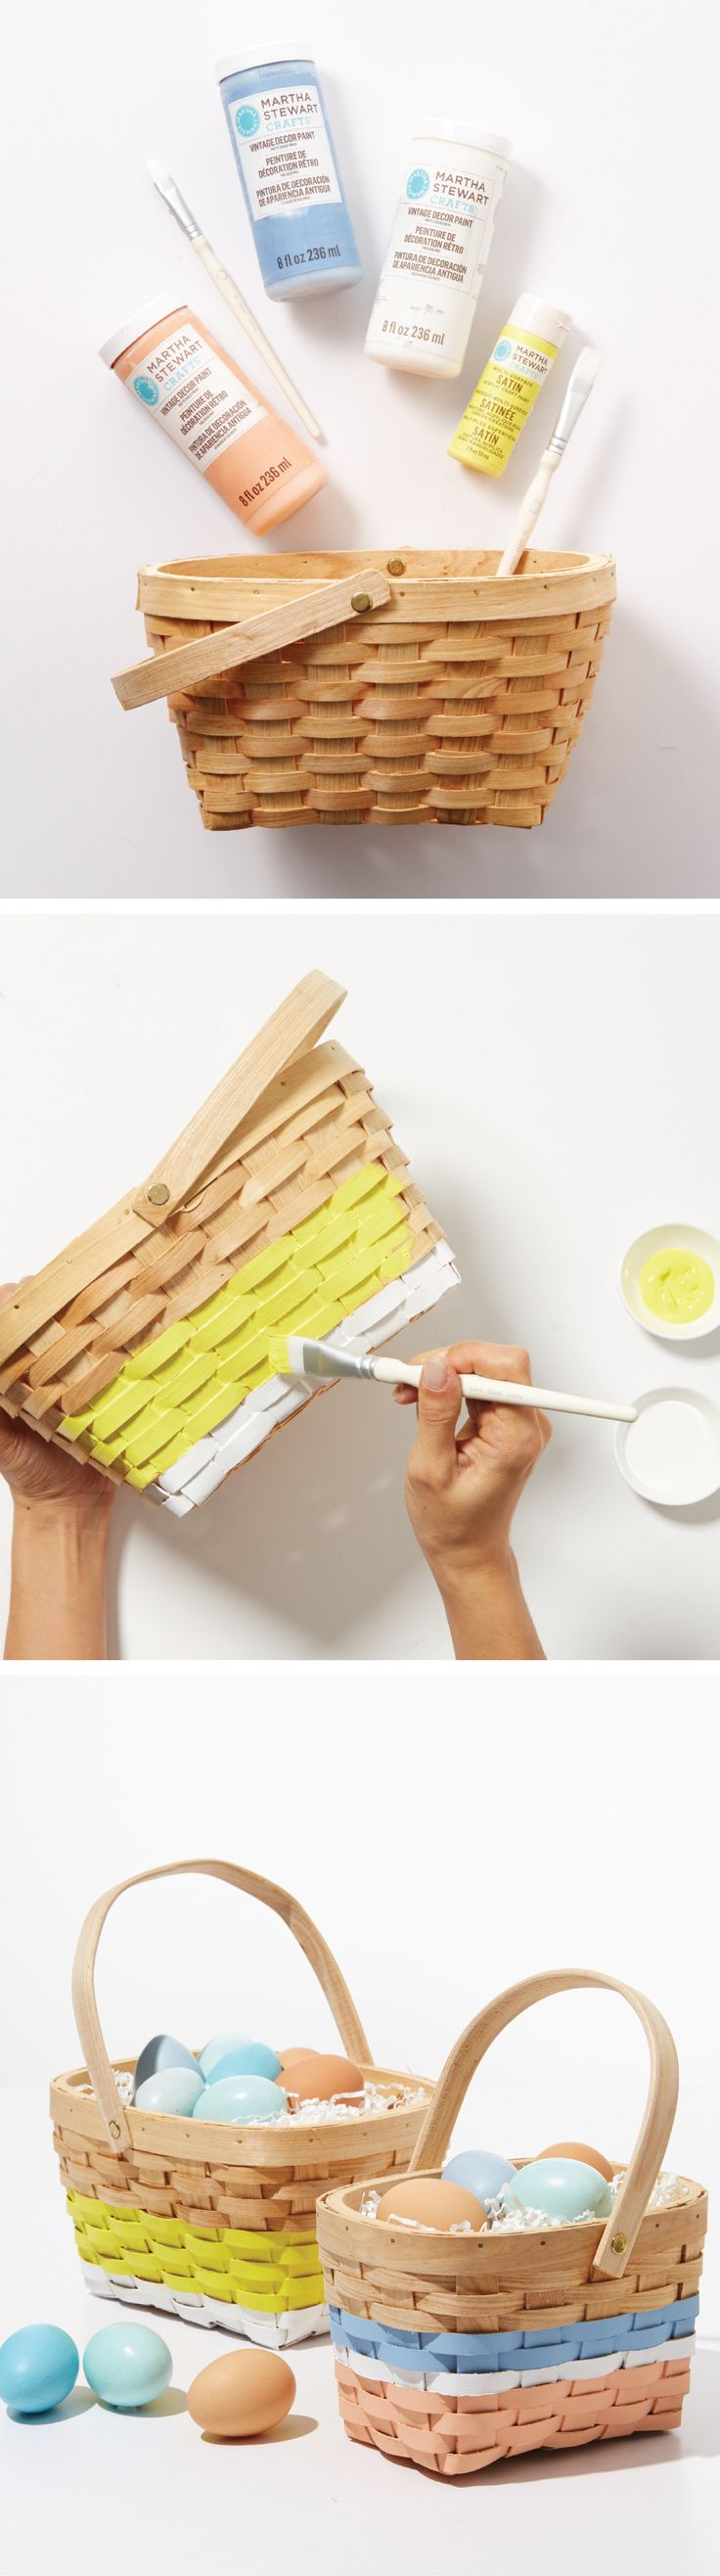 These woven baskets upgraded with a fun splash of color are a DIY no brainer! #MarthaStewartCrafts